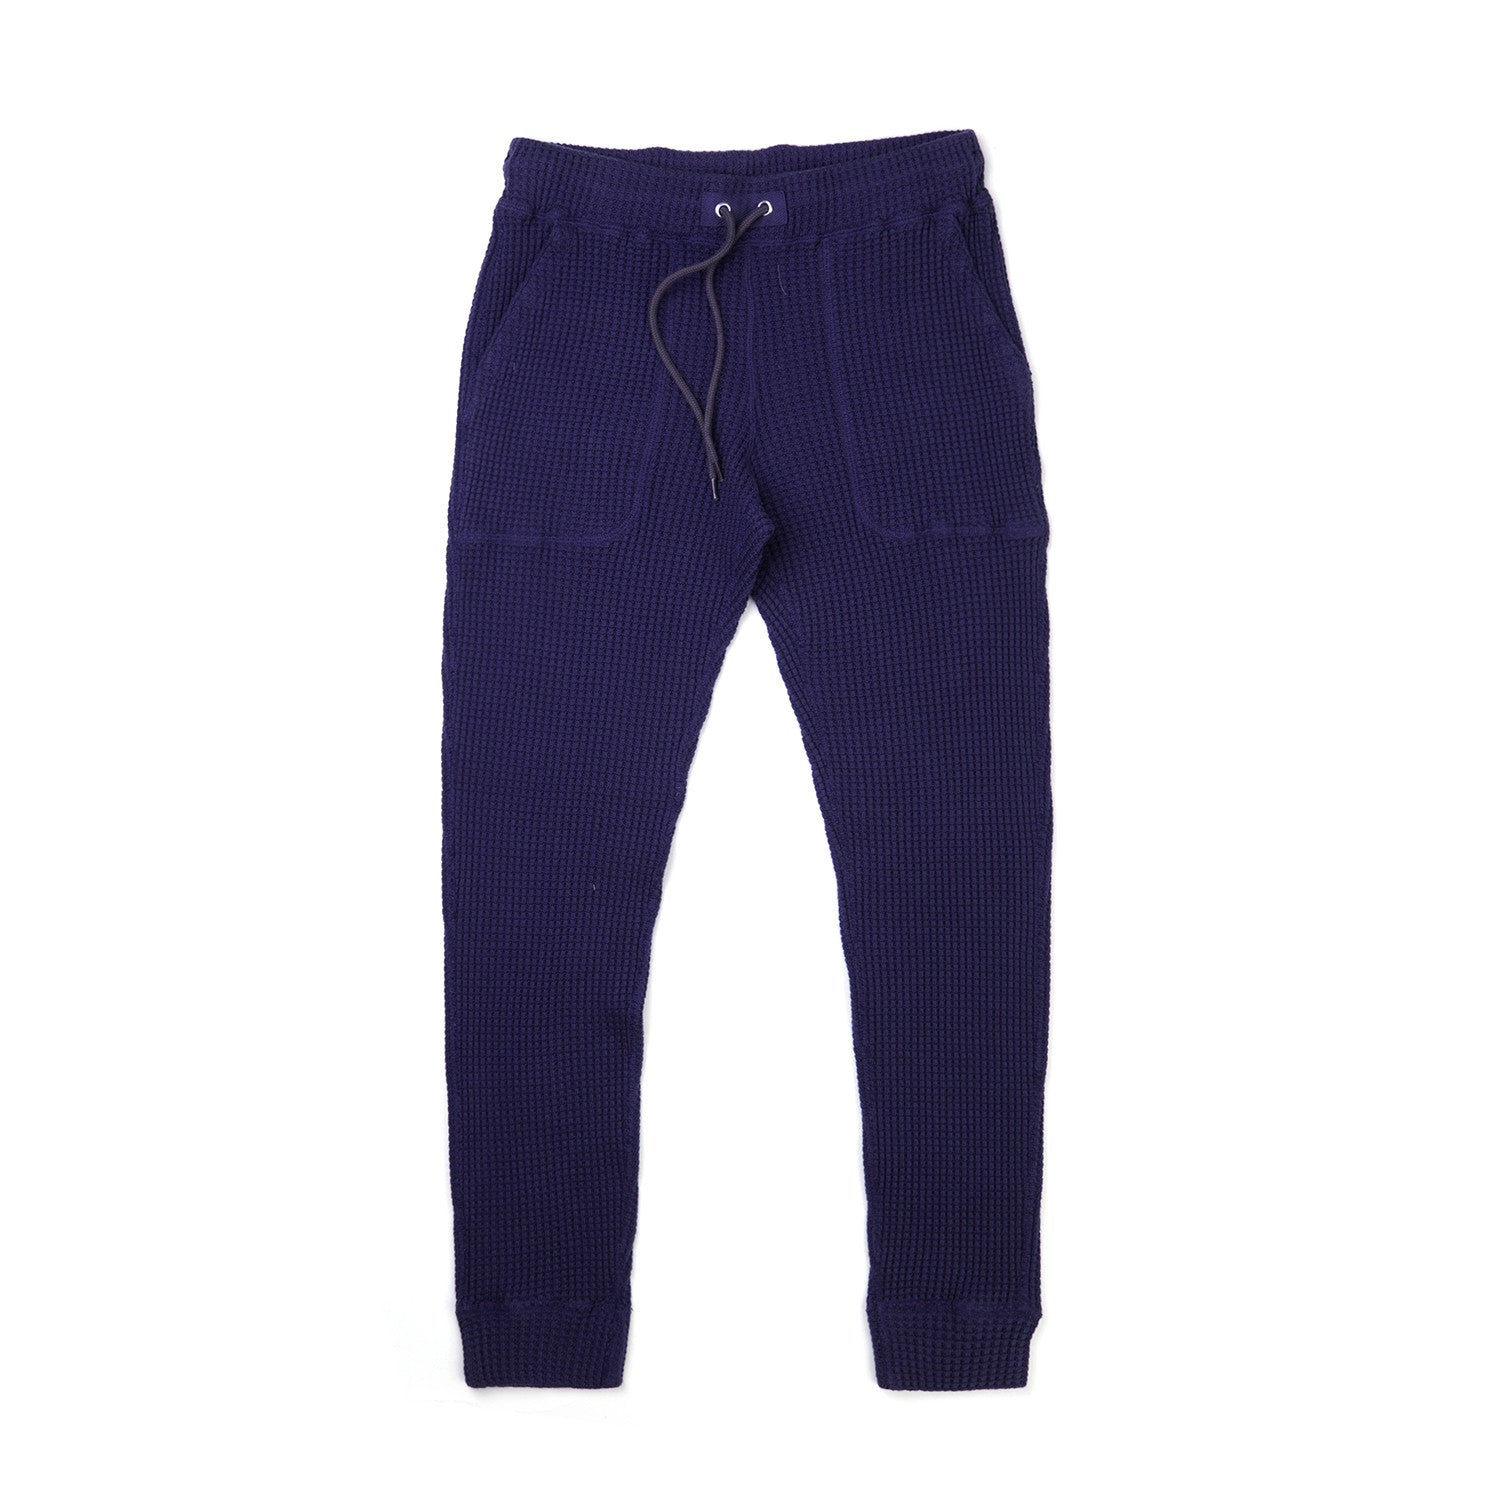 Bedwin 'Cucchi' 10L Tapered Fit Thermal Pants Navy